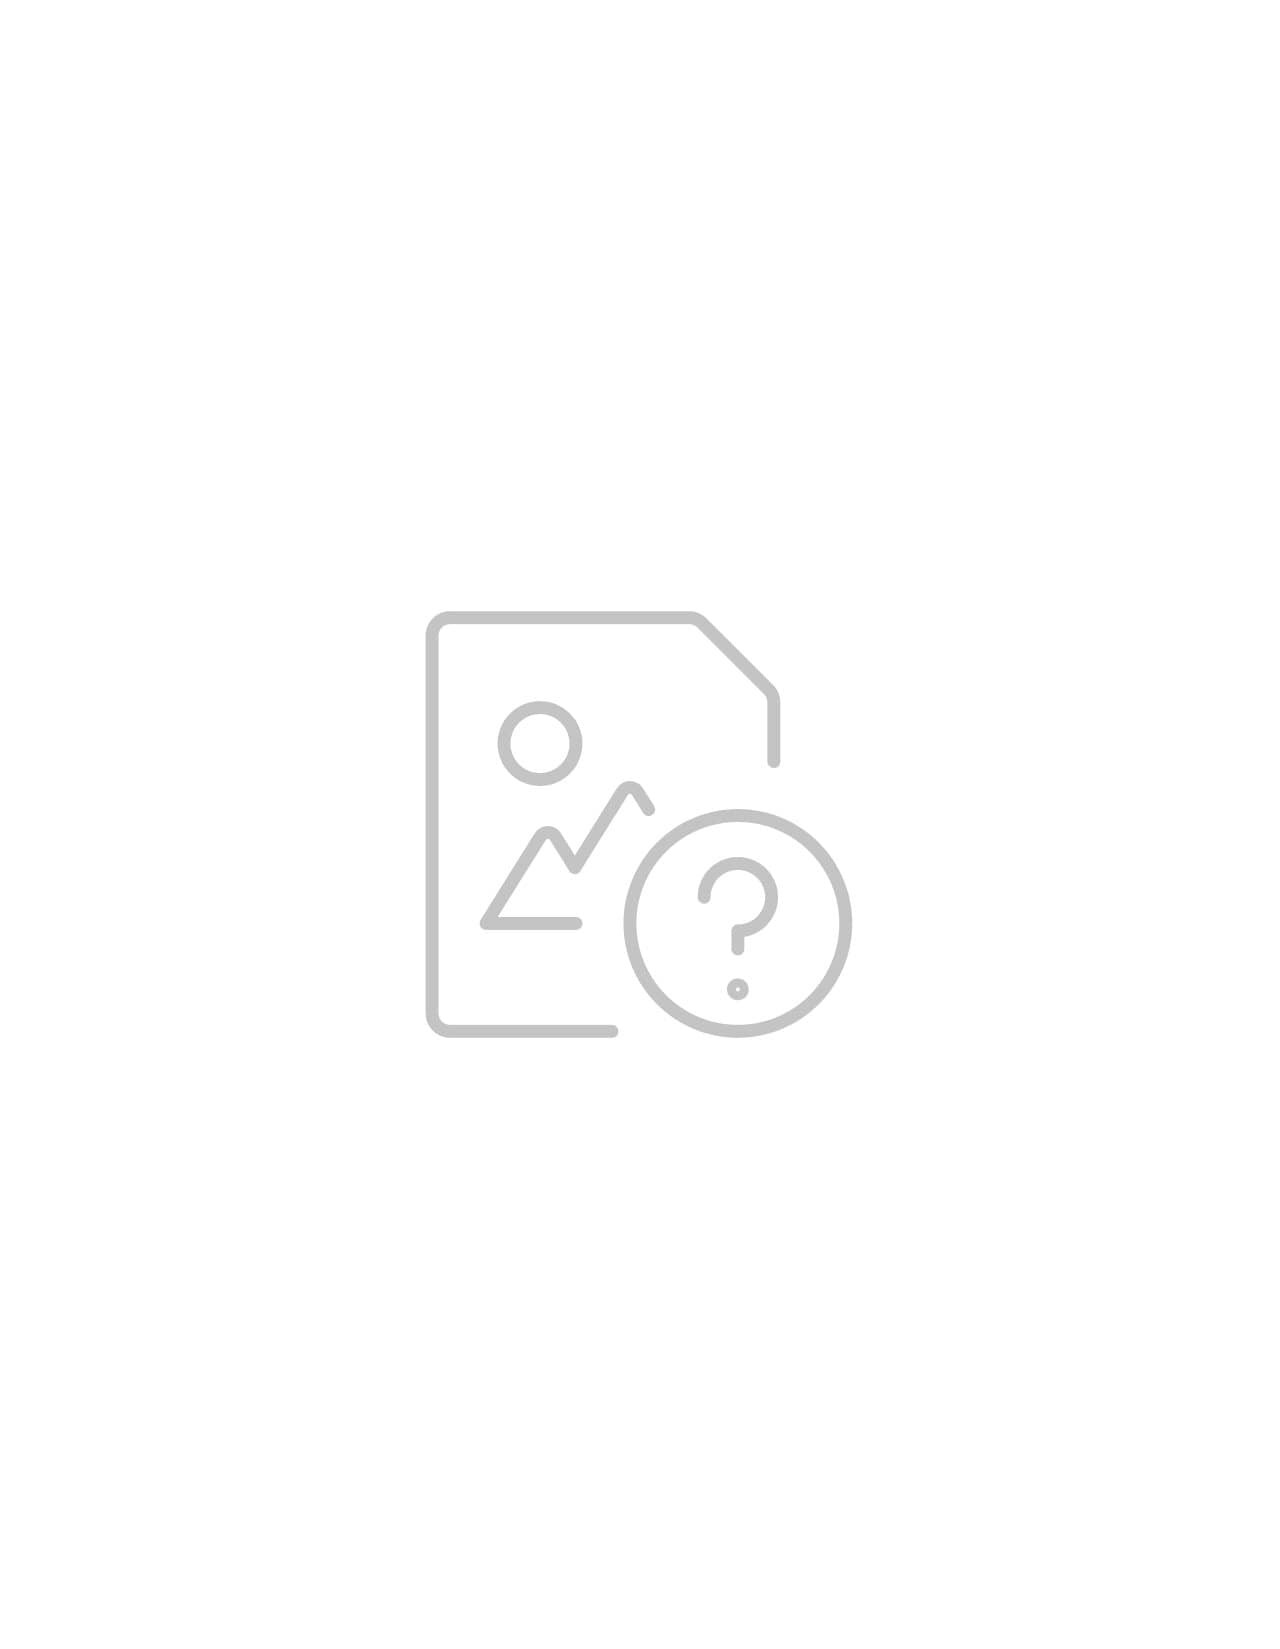 Courier, February 11, 1809, Page 1